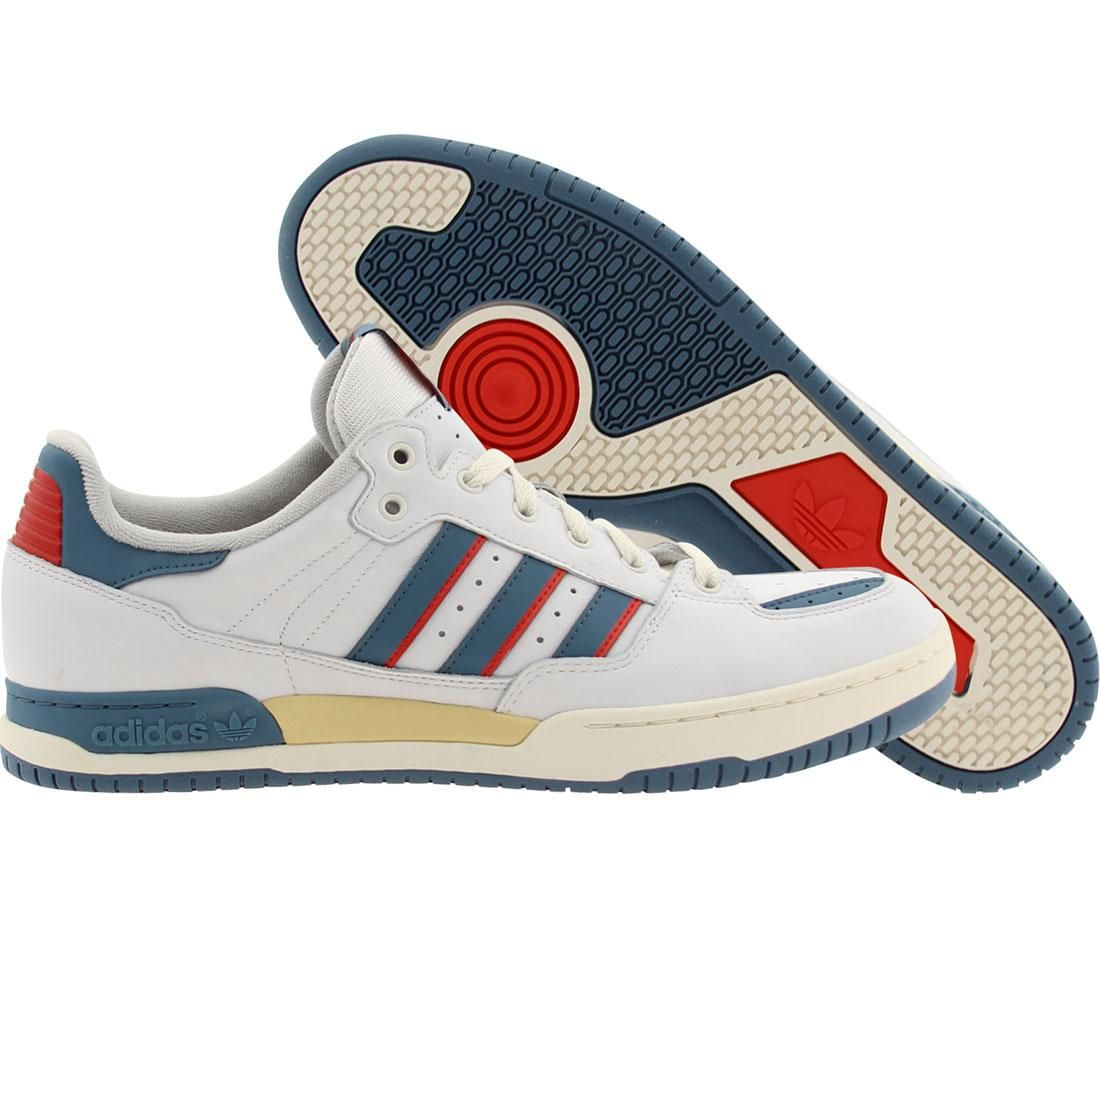 2619f283c8e Adidas Men Tennis Super OG - Ivan Lendl (white   neowhi   ststow   whtvap)  Shoes M21399